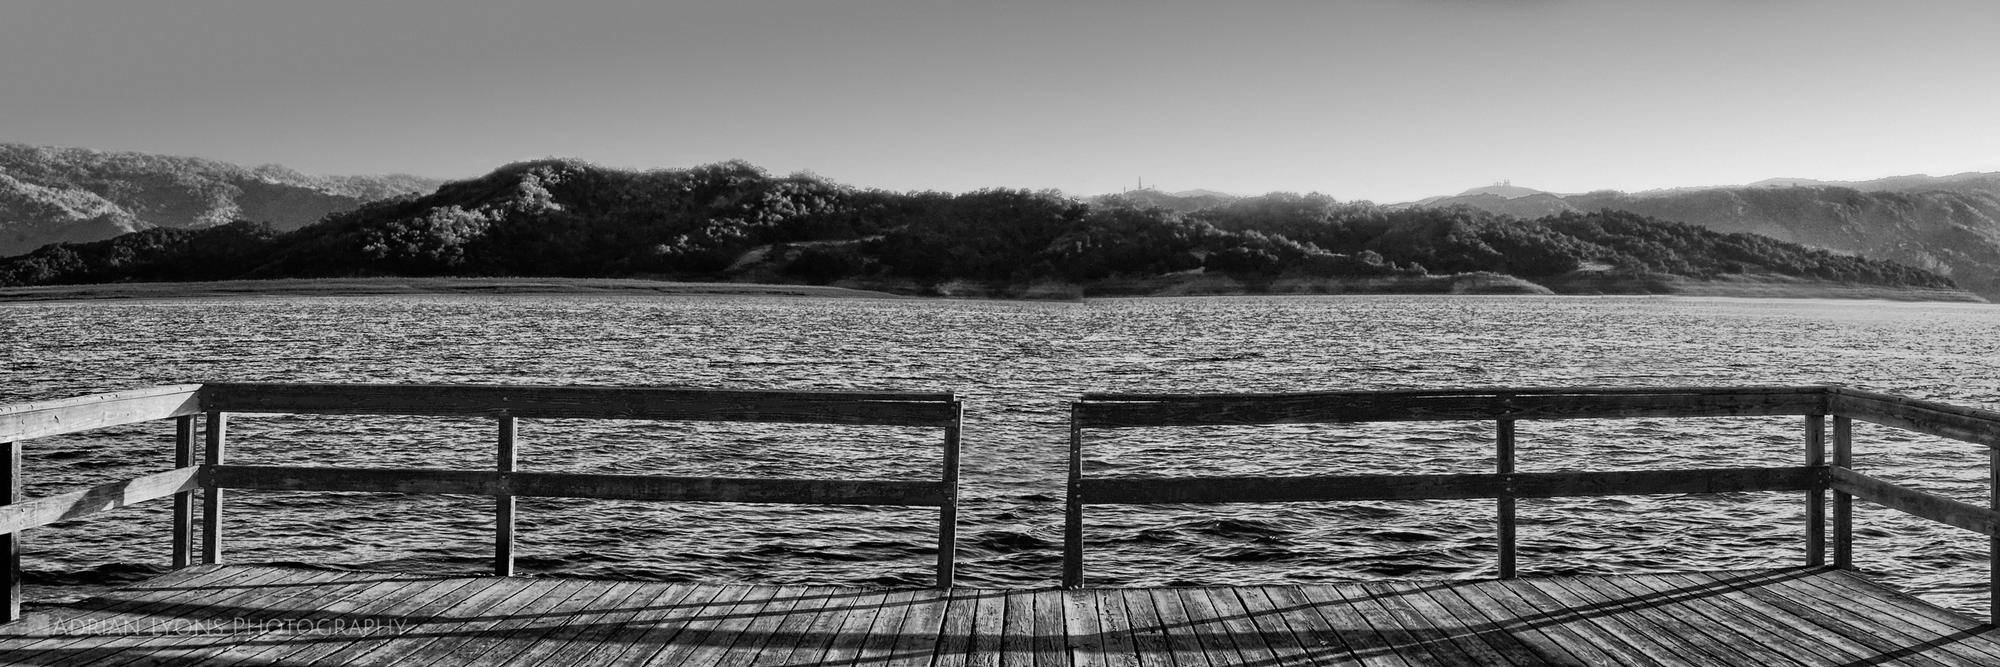 6675 - The Dock